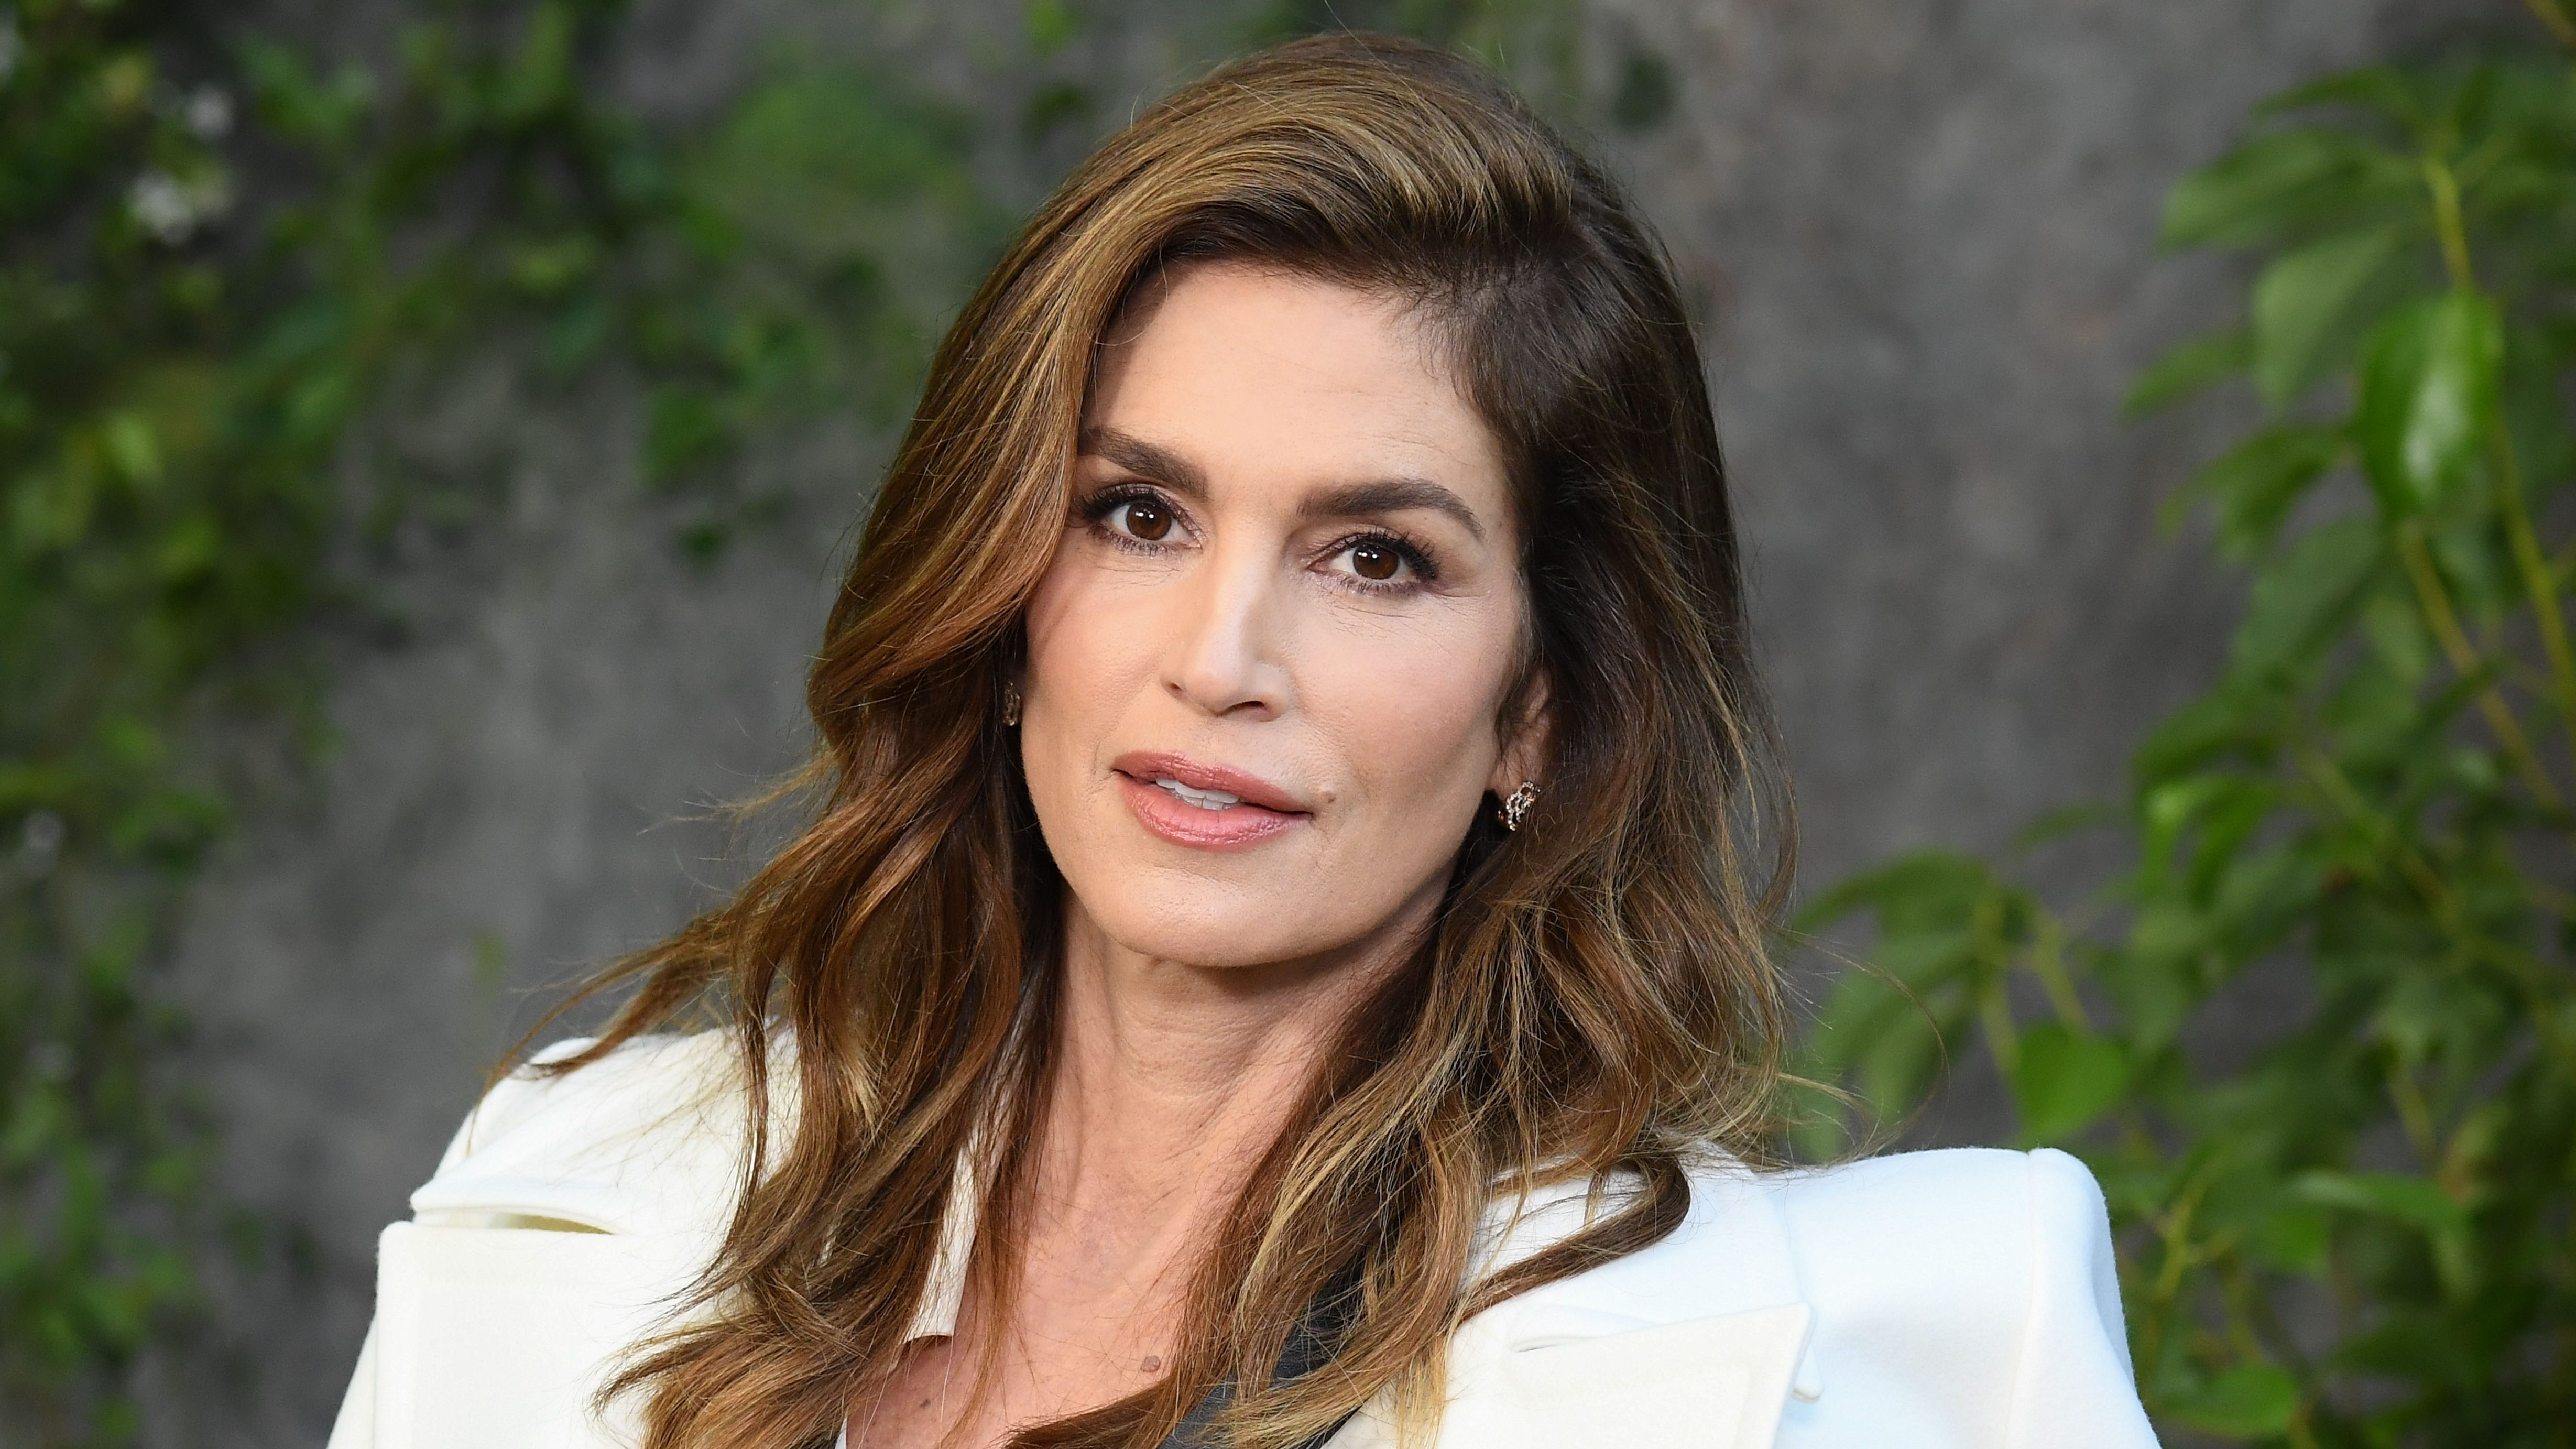 Cindy Crawford Reveals Why She Still Models Nude in Her 50s: 'Theres Still Beauty in That'